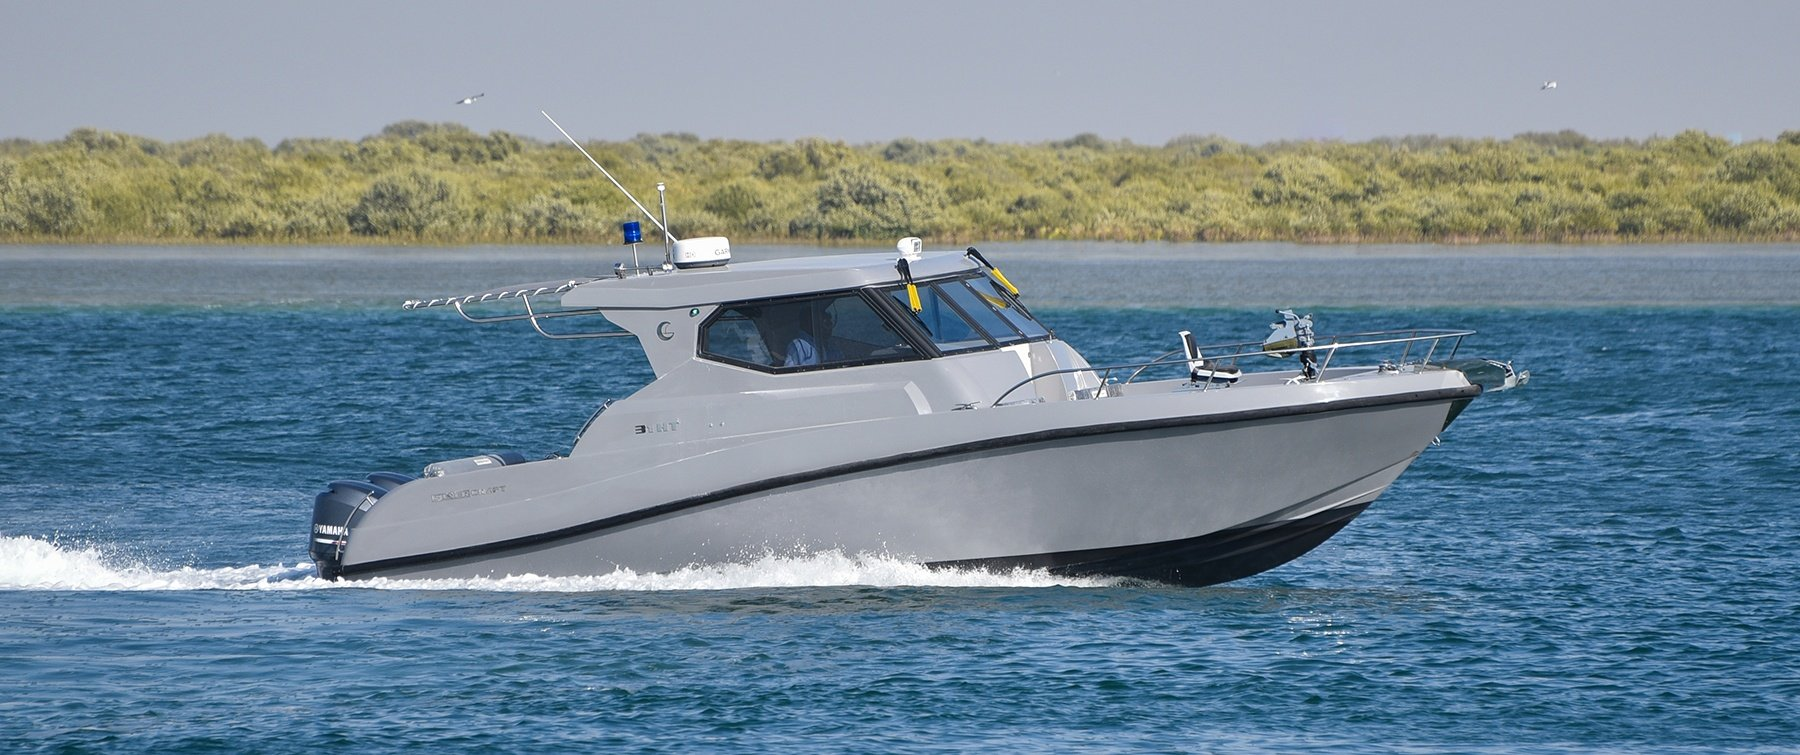 Exterior of the Coast Guard 31 HT by Gulf Craft, UAE